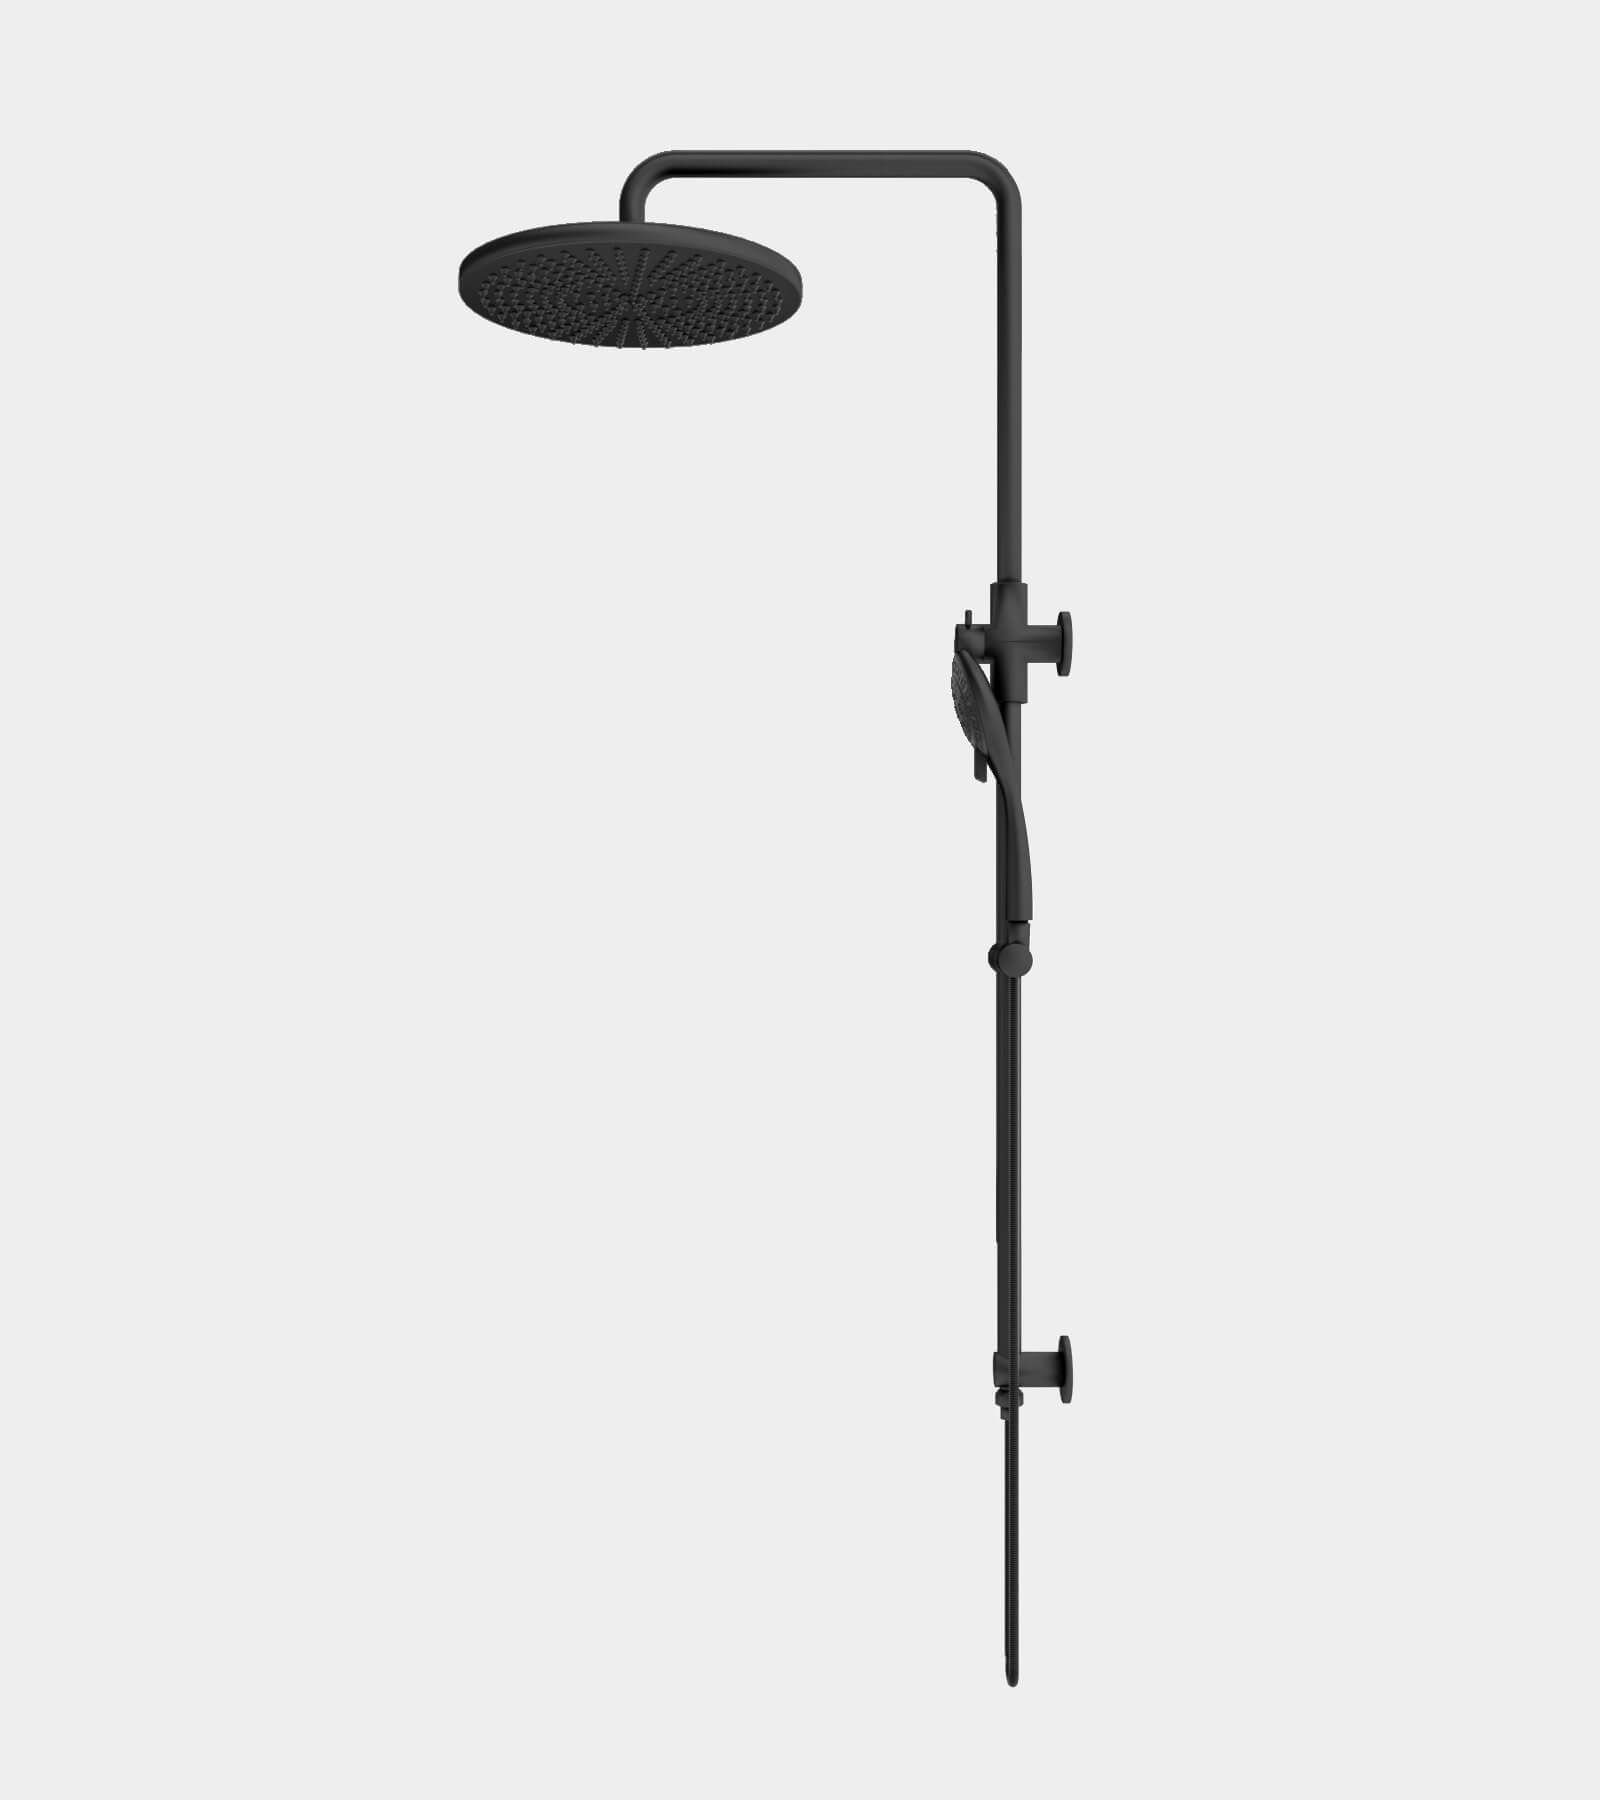 Shower set black for wall installation 2 3D Model